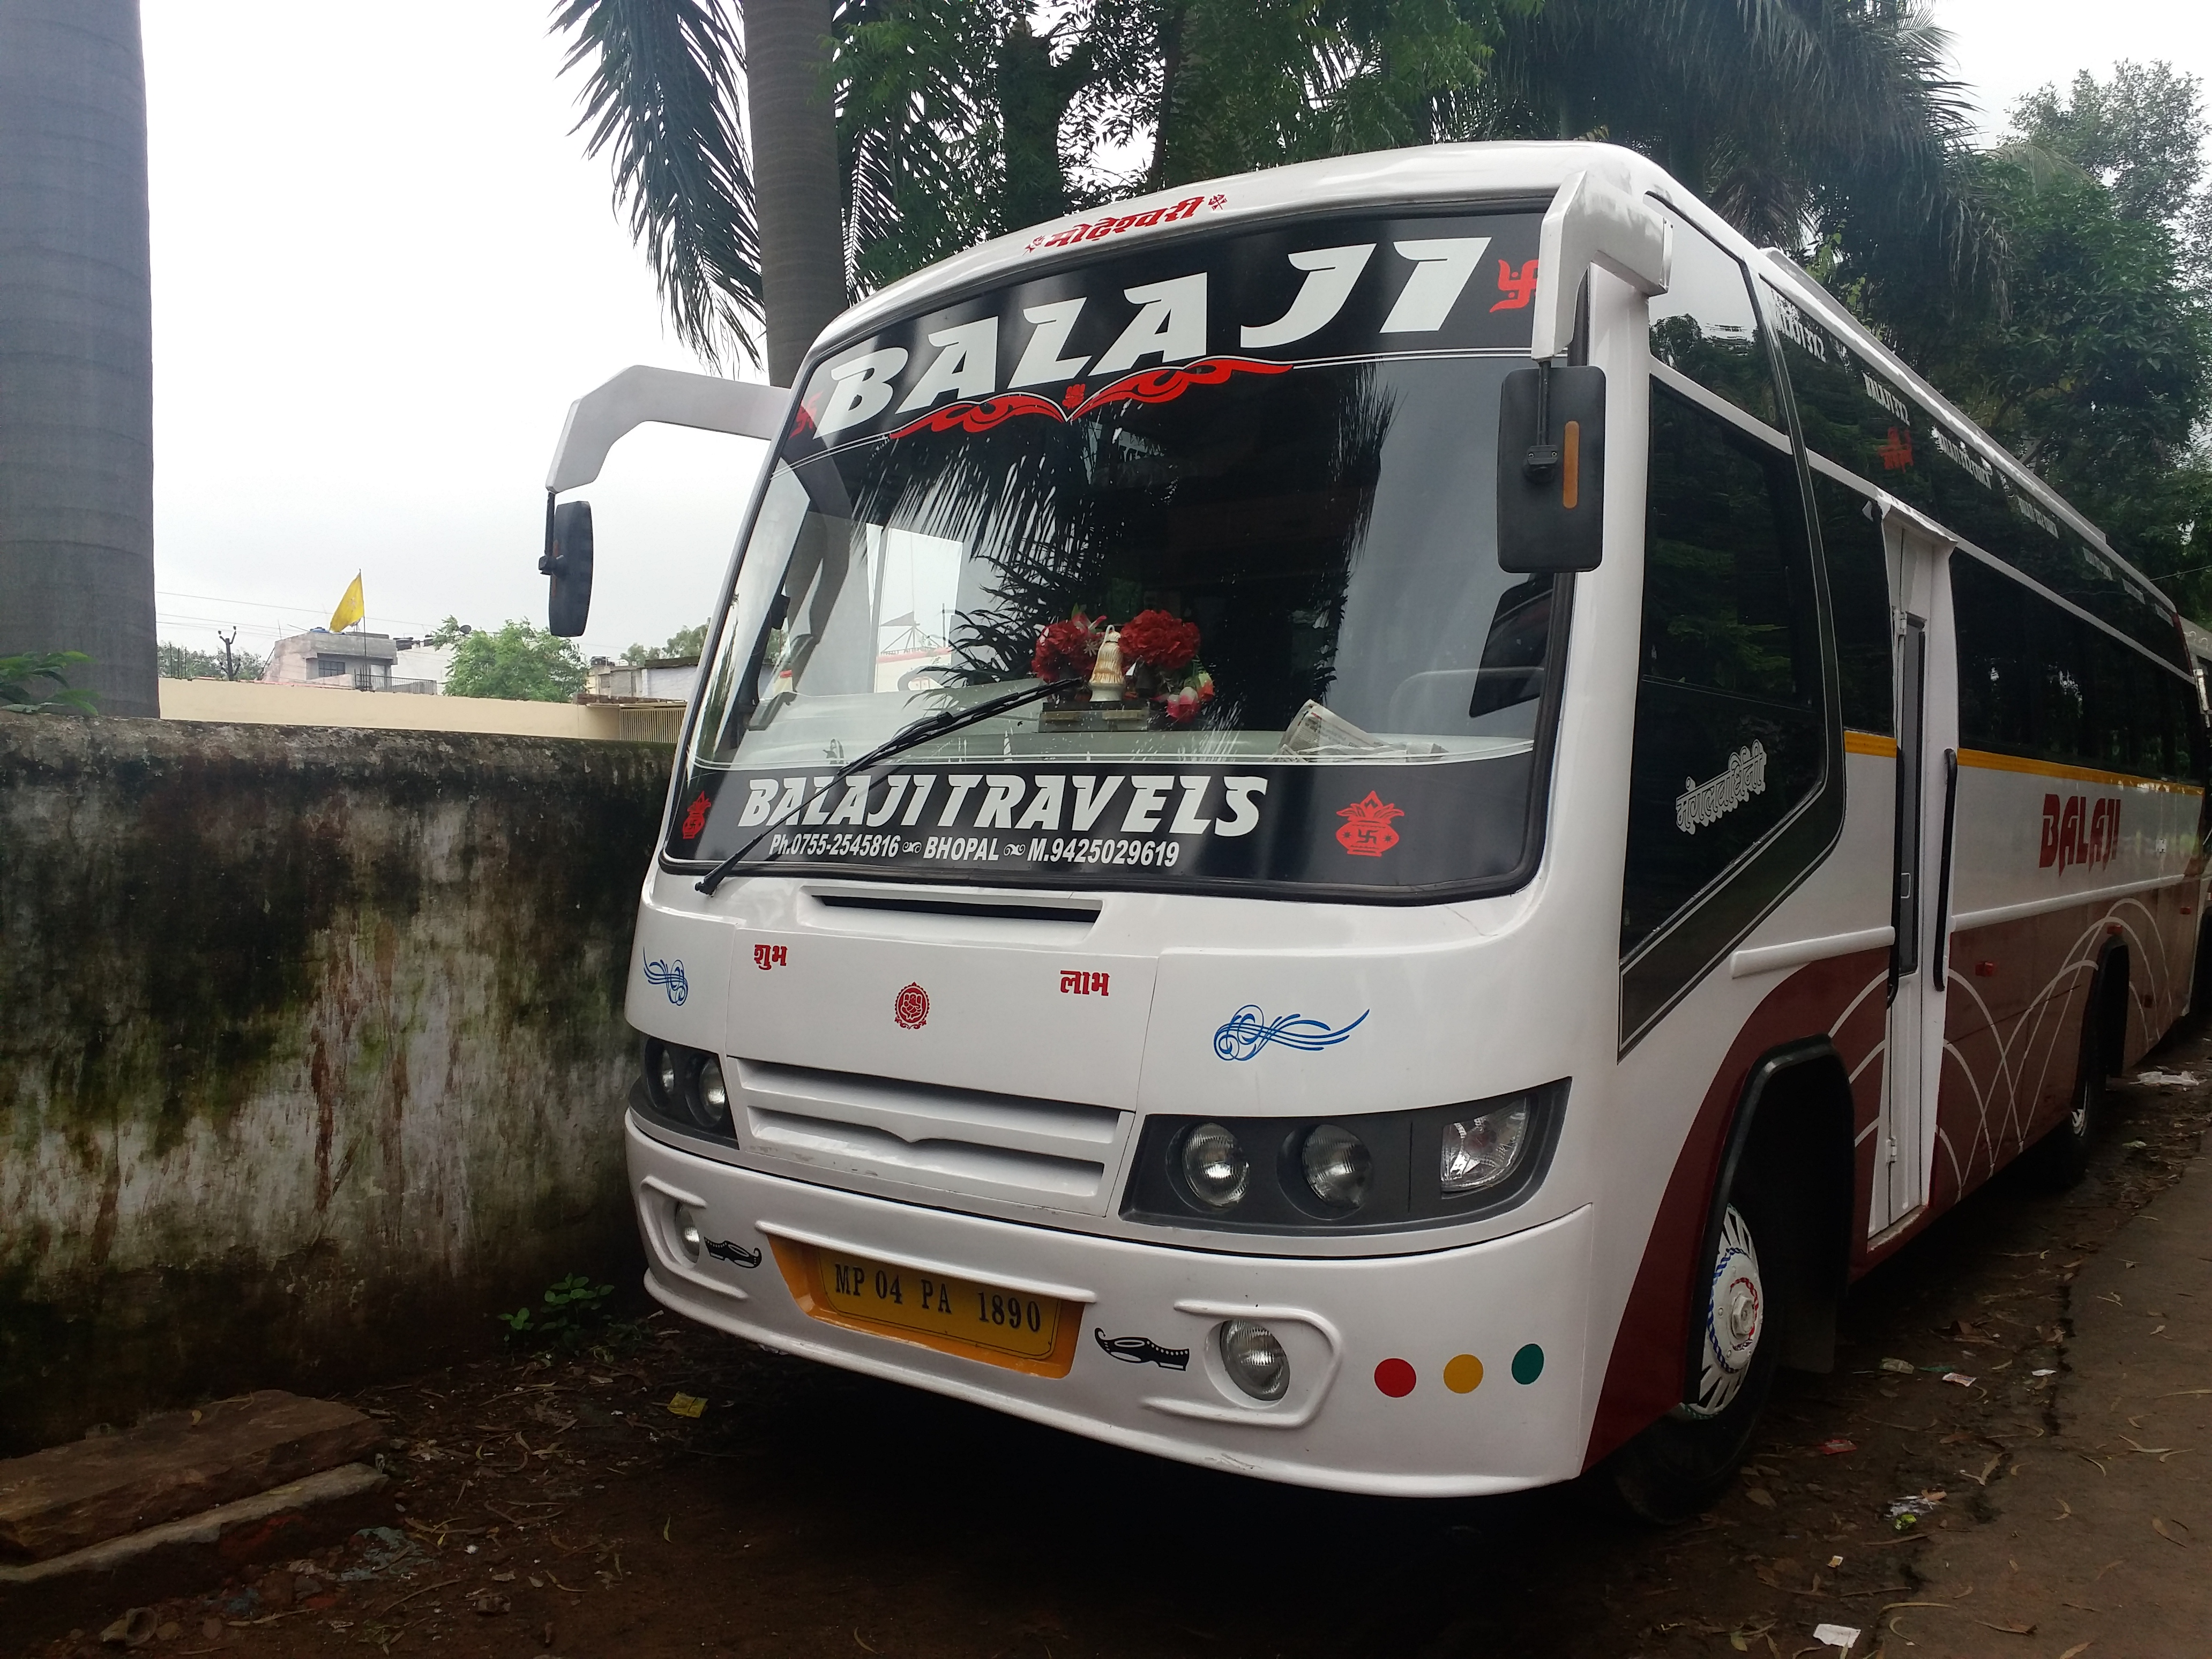 Balaji forex tours and travels